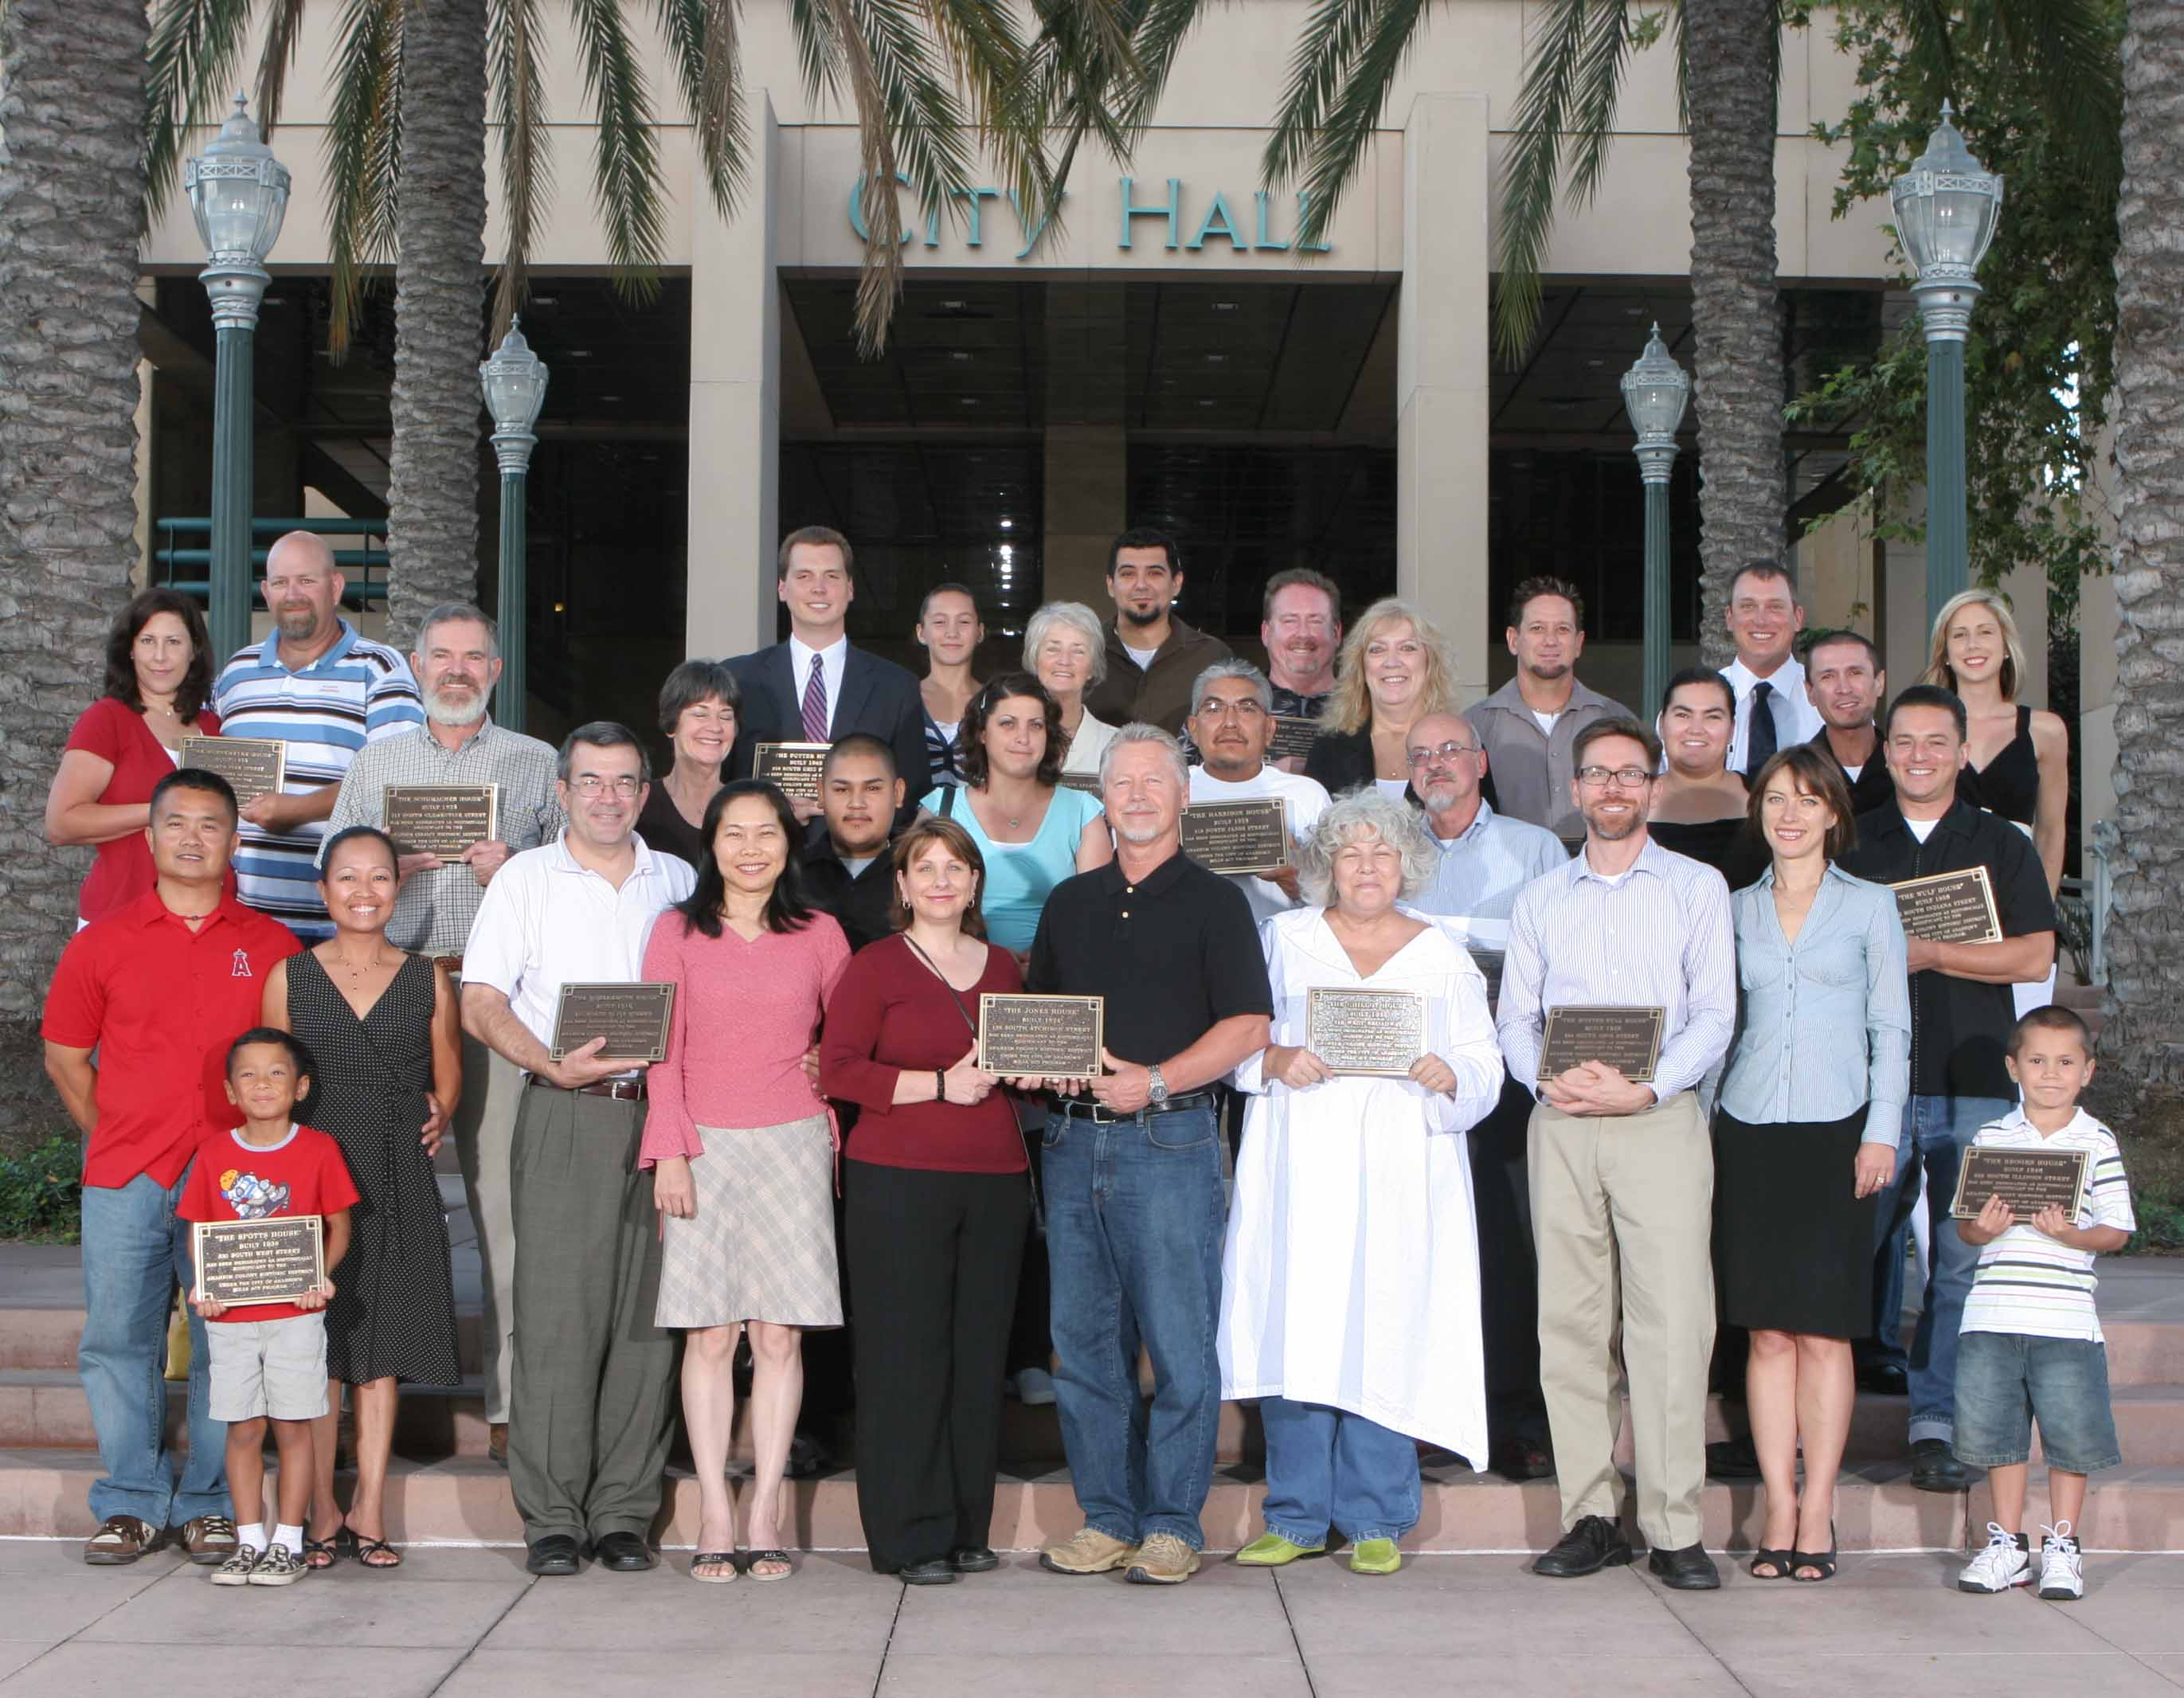 Group photo with the onwers holding their plaques for the Mills Act Participating Properties from 2007